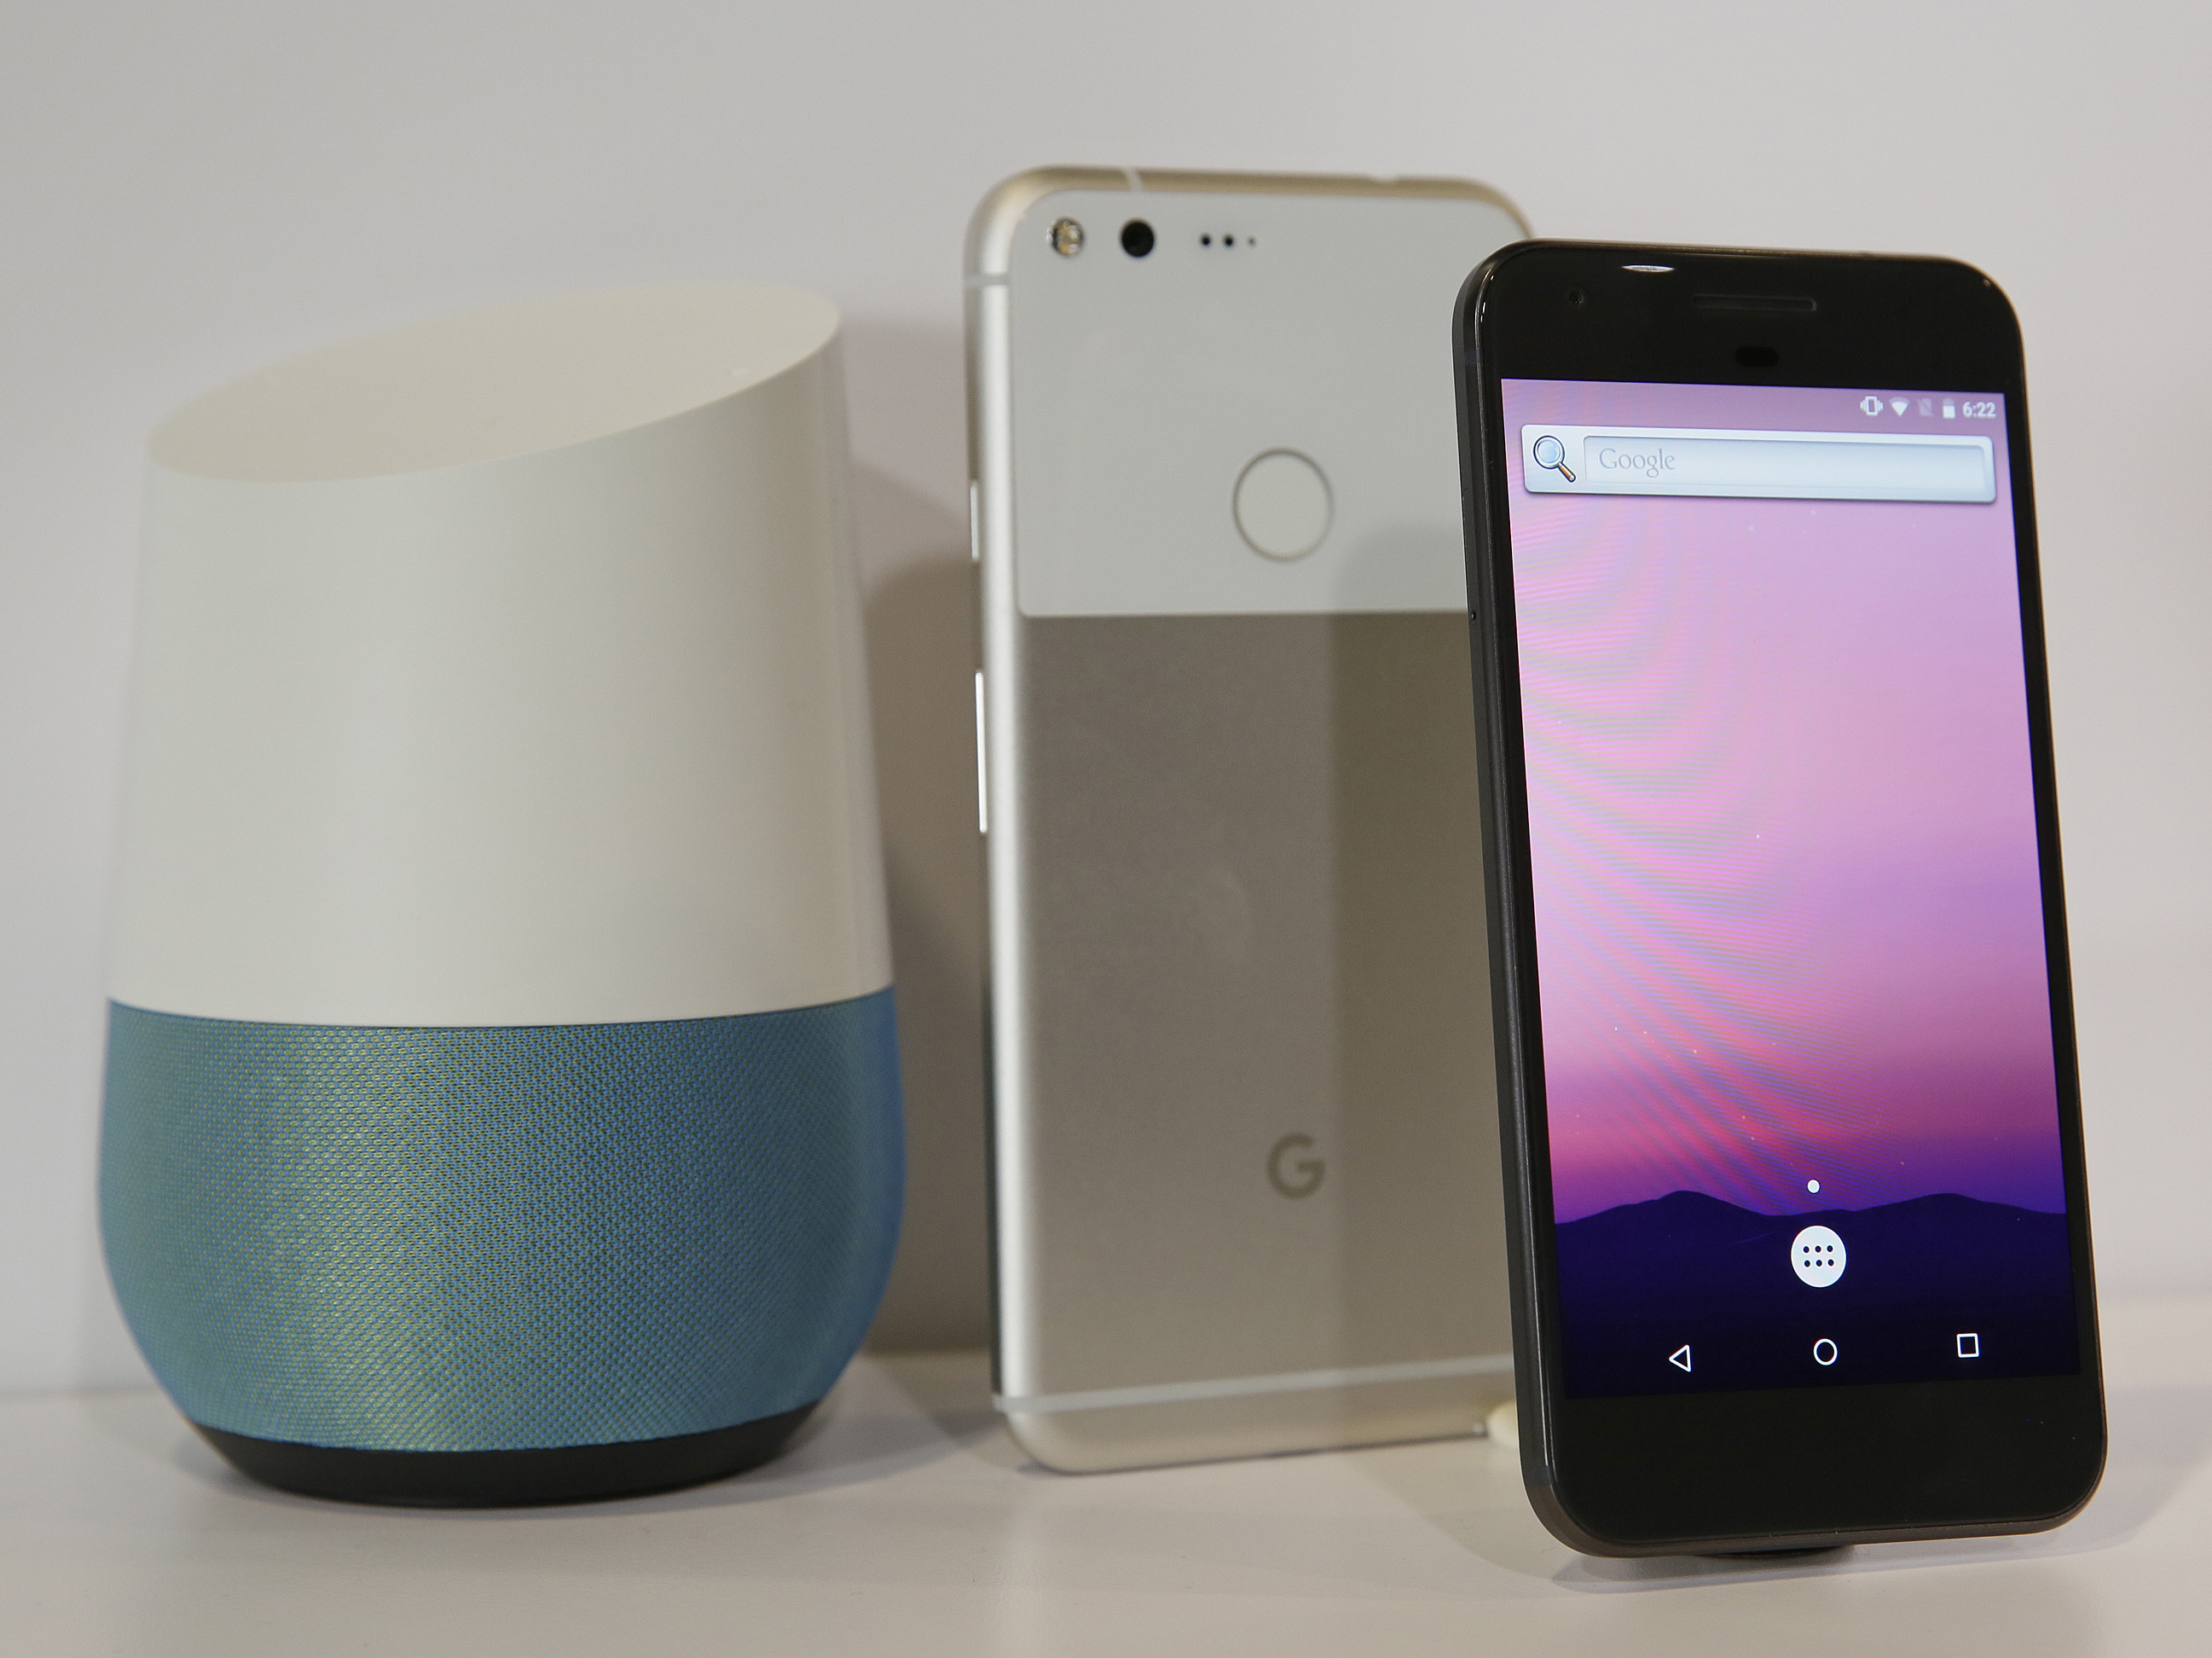 Google: Launch of New Pixel Phones Marks Shift to Artificial Intelligence